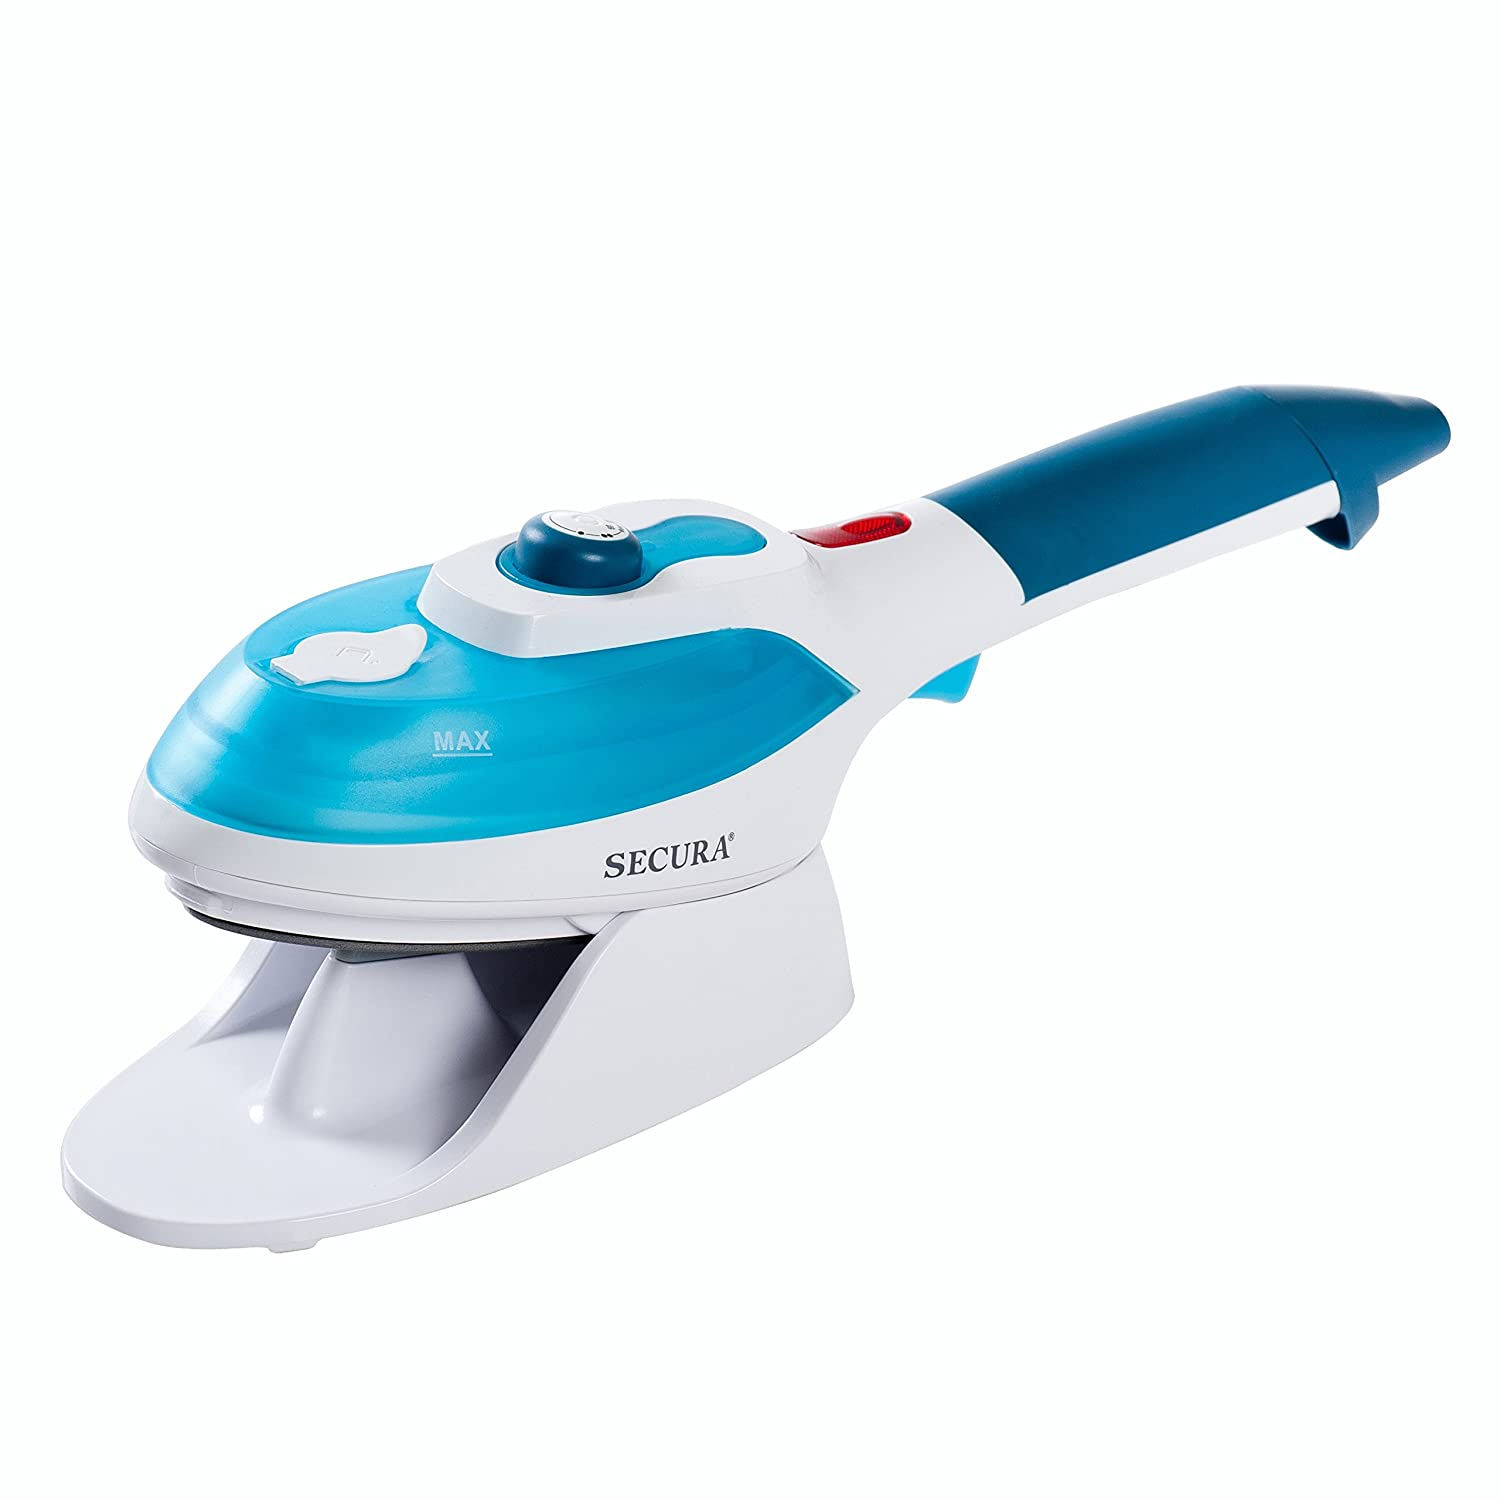 Secura Turbo Blast 2-in-1 Garment Steamer and Steam Iron (3-Year Warranty) FBA_SWS-178A